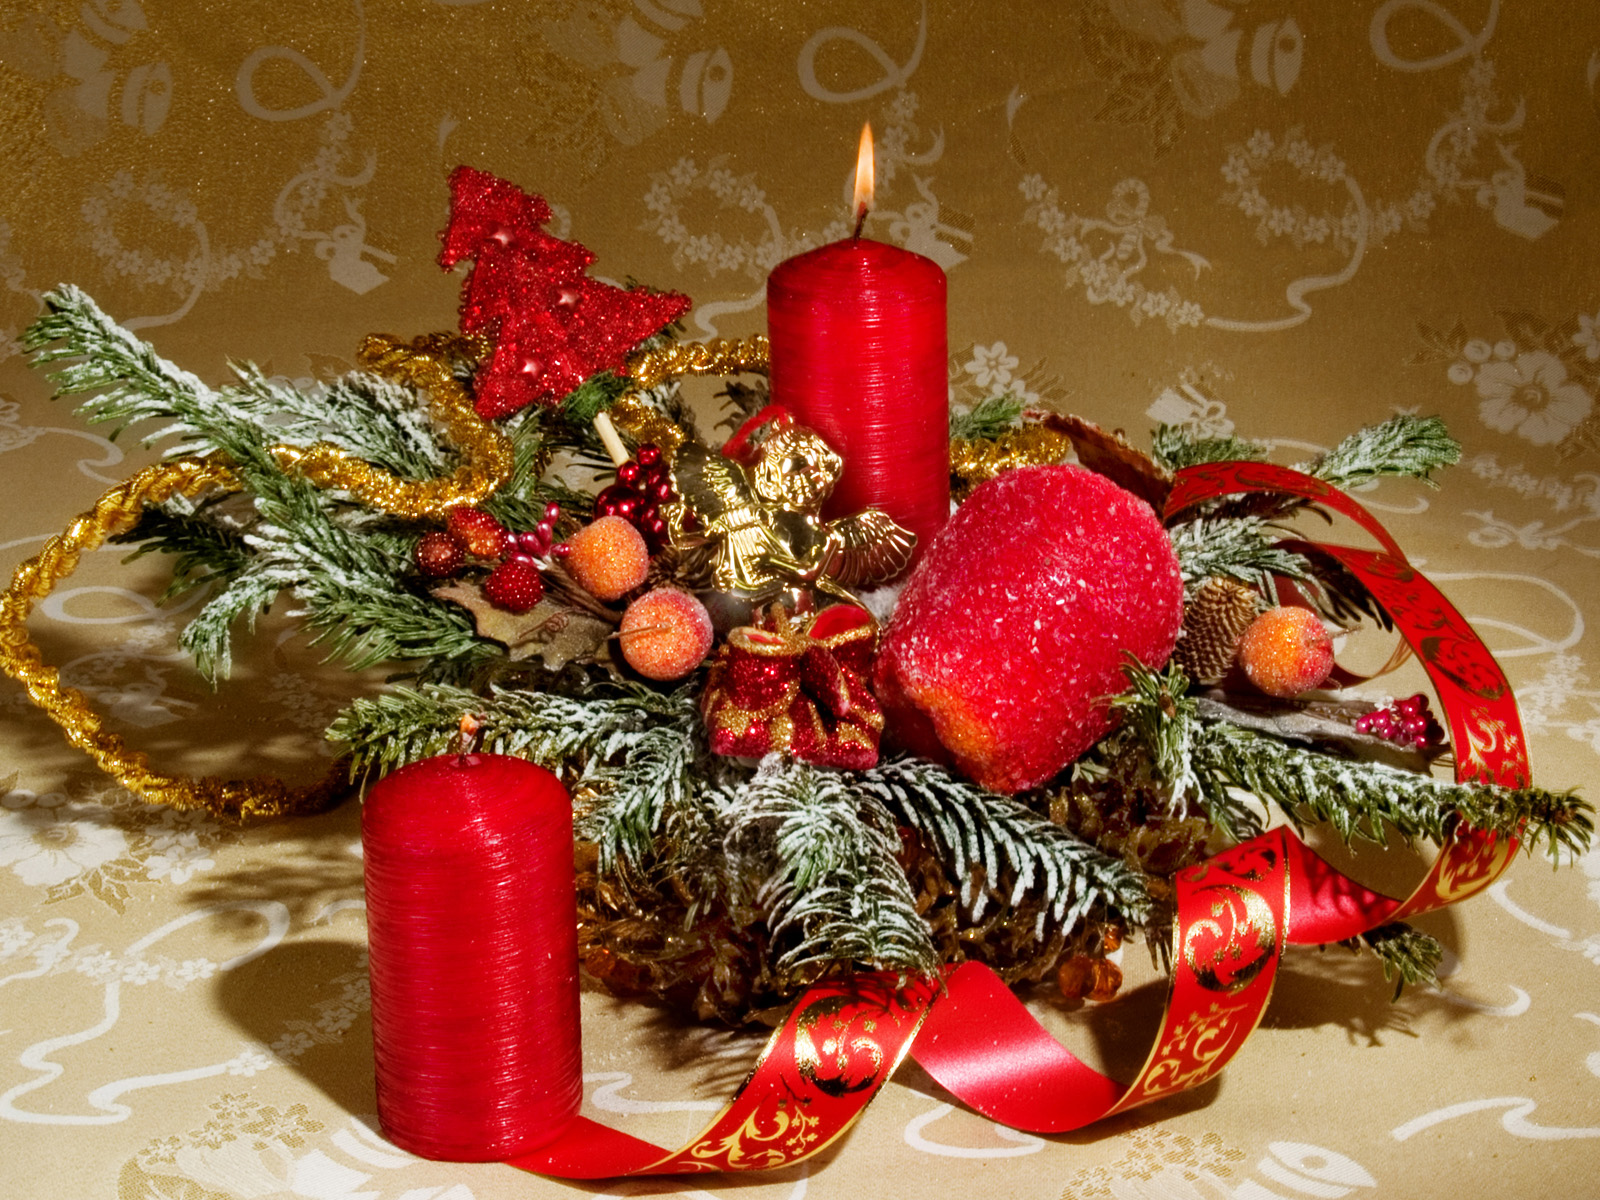 Christmas Candle Wallpapers   Download Christmas Candle Wallpapers 1600x1200